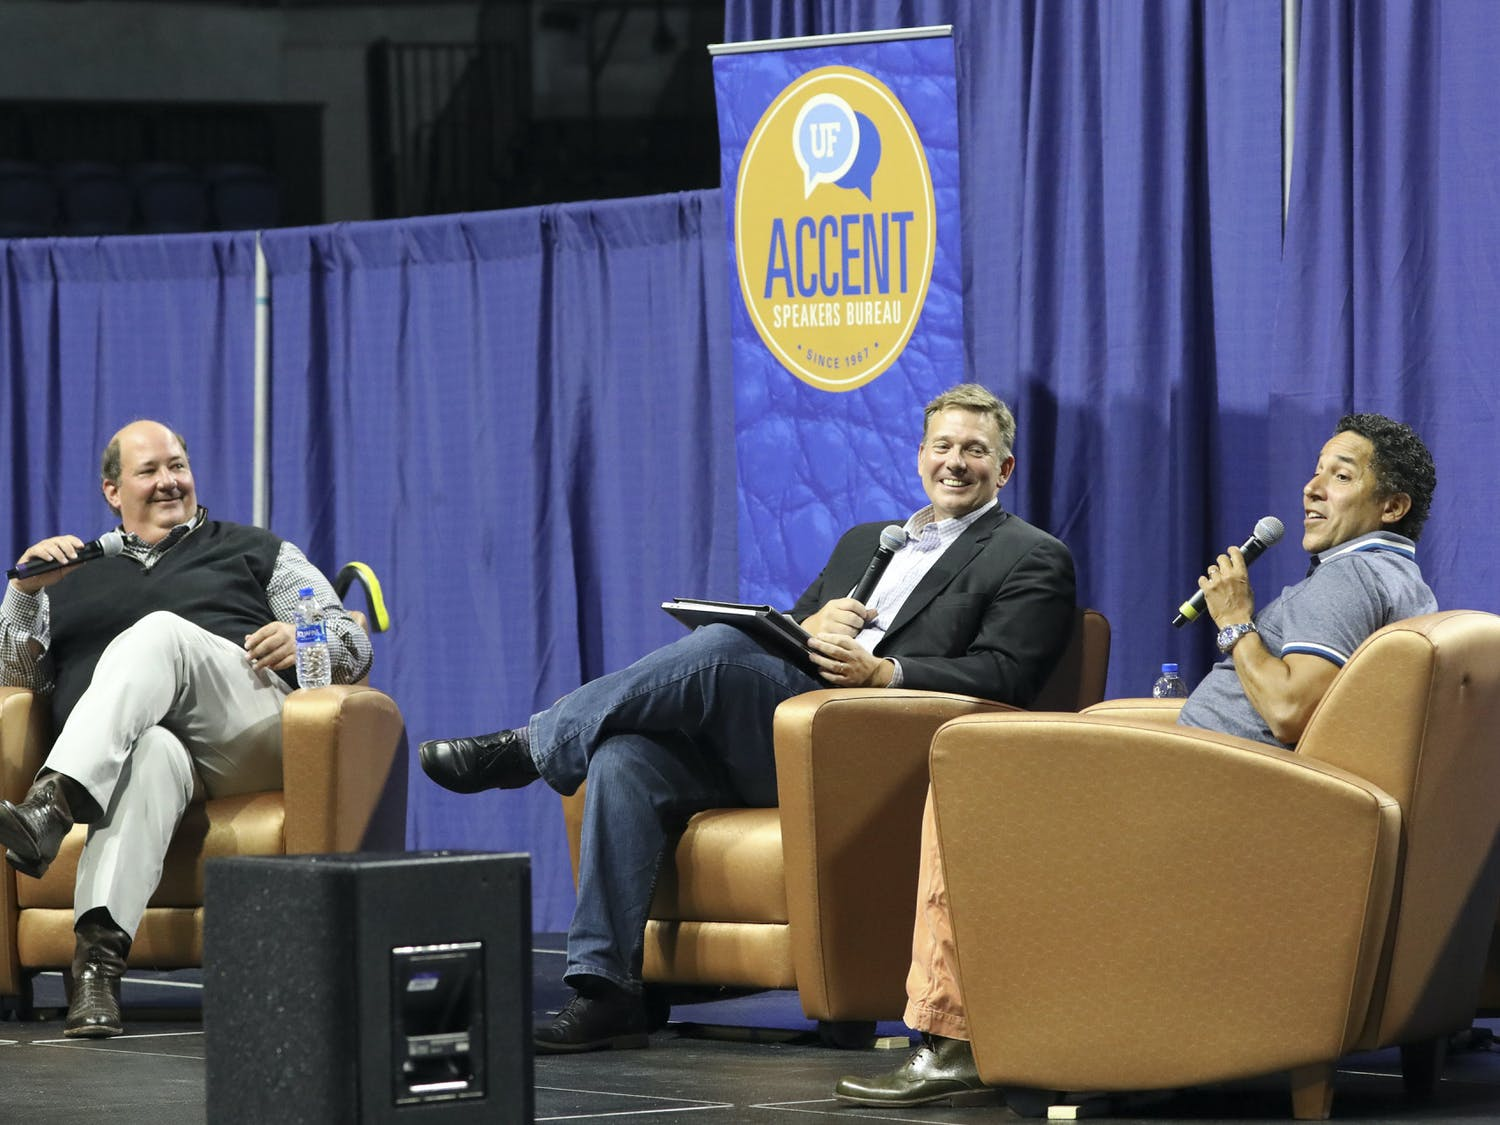 UF journalism professor Ted Spiker (center) moderates a conversation with ACCENT Speakers Bureau guests Brian Baumgartner (left) and Oscar Nuñez (right) on Wednesday, June 30, 2021. The event is the first fully in-person Accent event since October 10, 2019, before the COVID-19 pandemic.